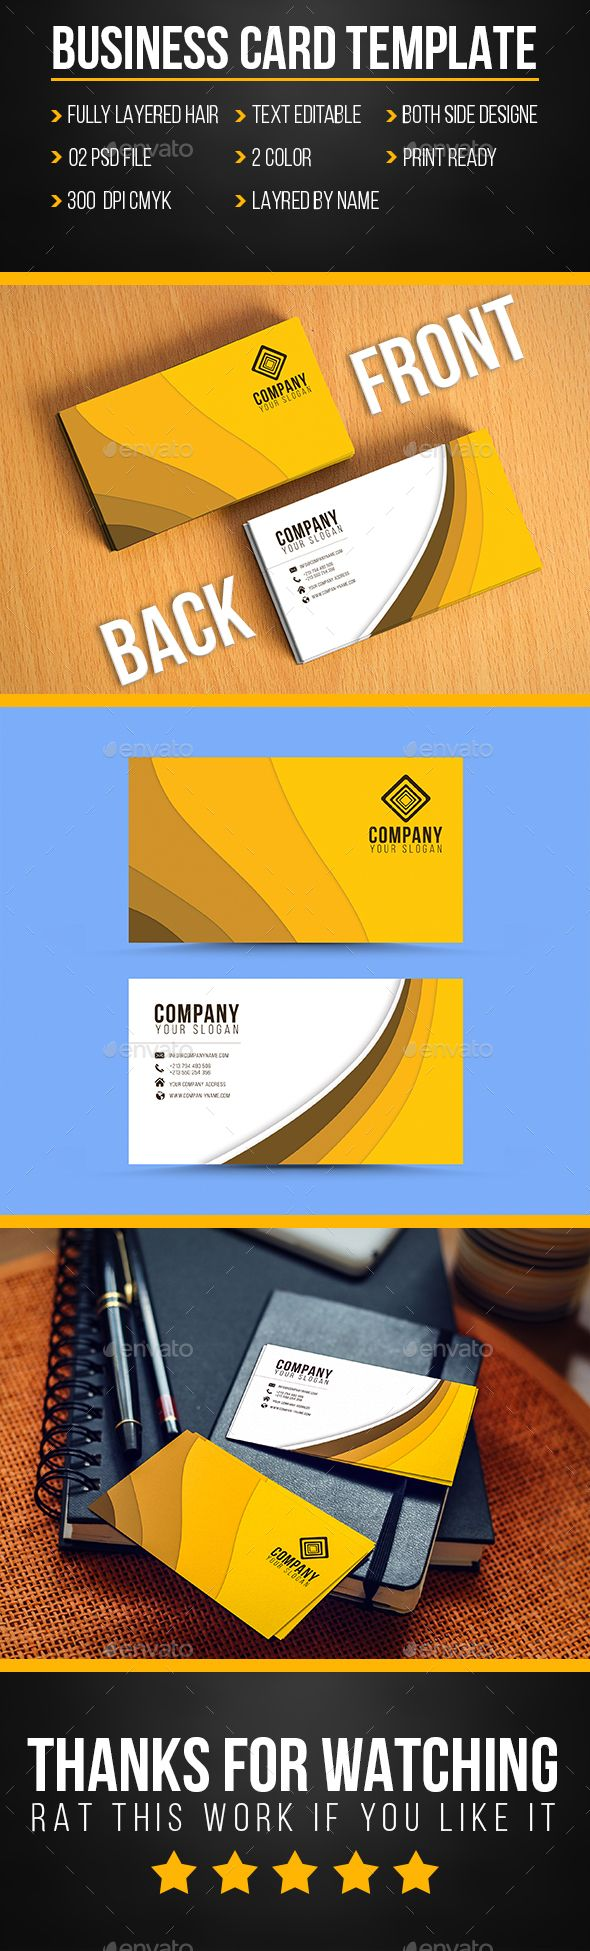 720 best business card mockup images on pinterest miniatures business card template photoshop psd pack logo available here https reheart Choice Image